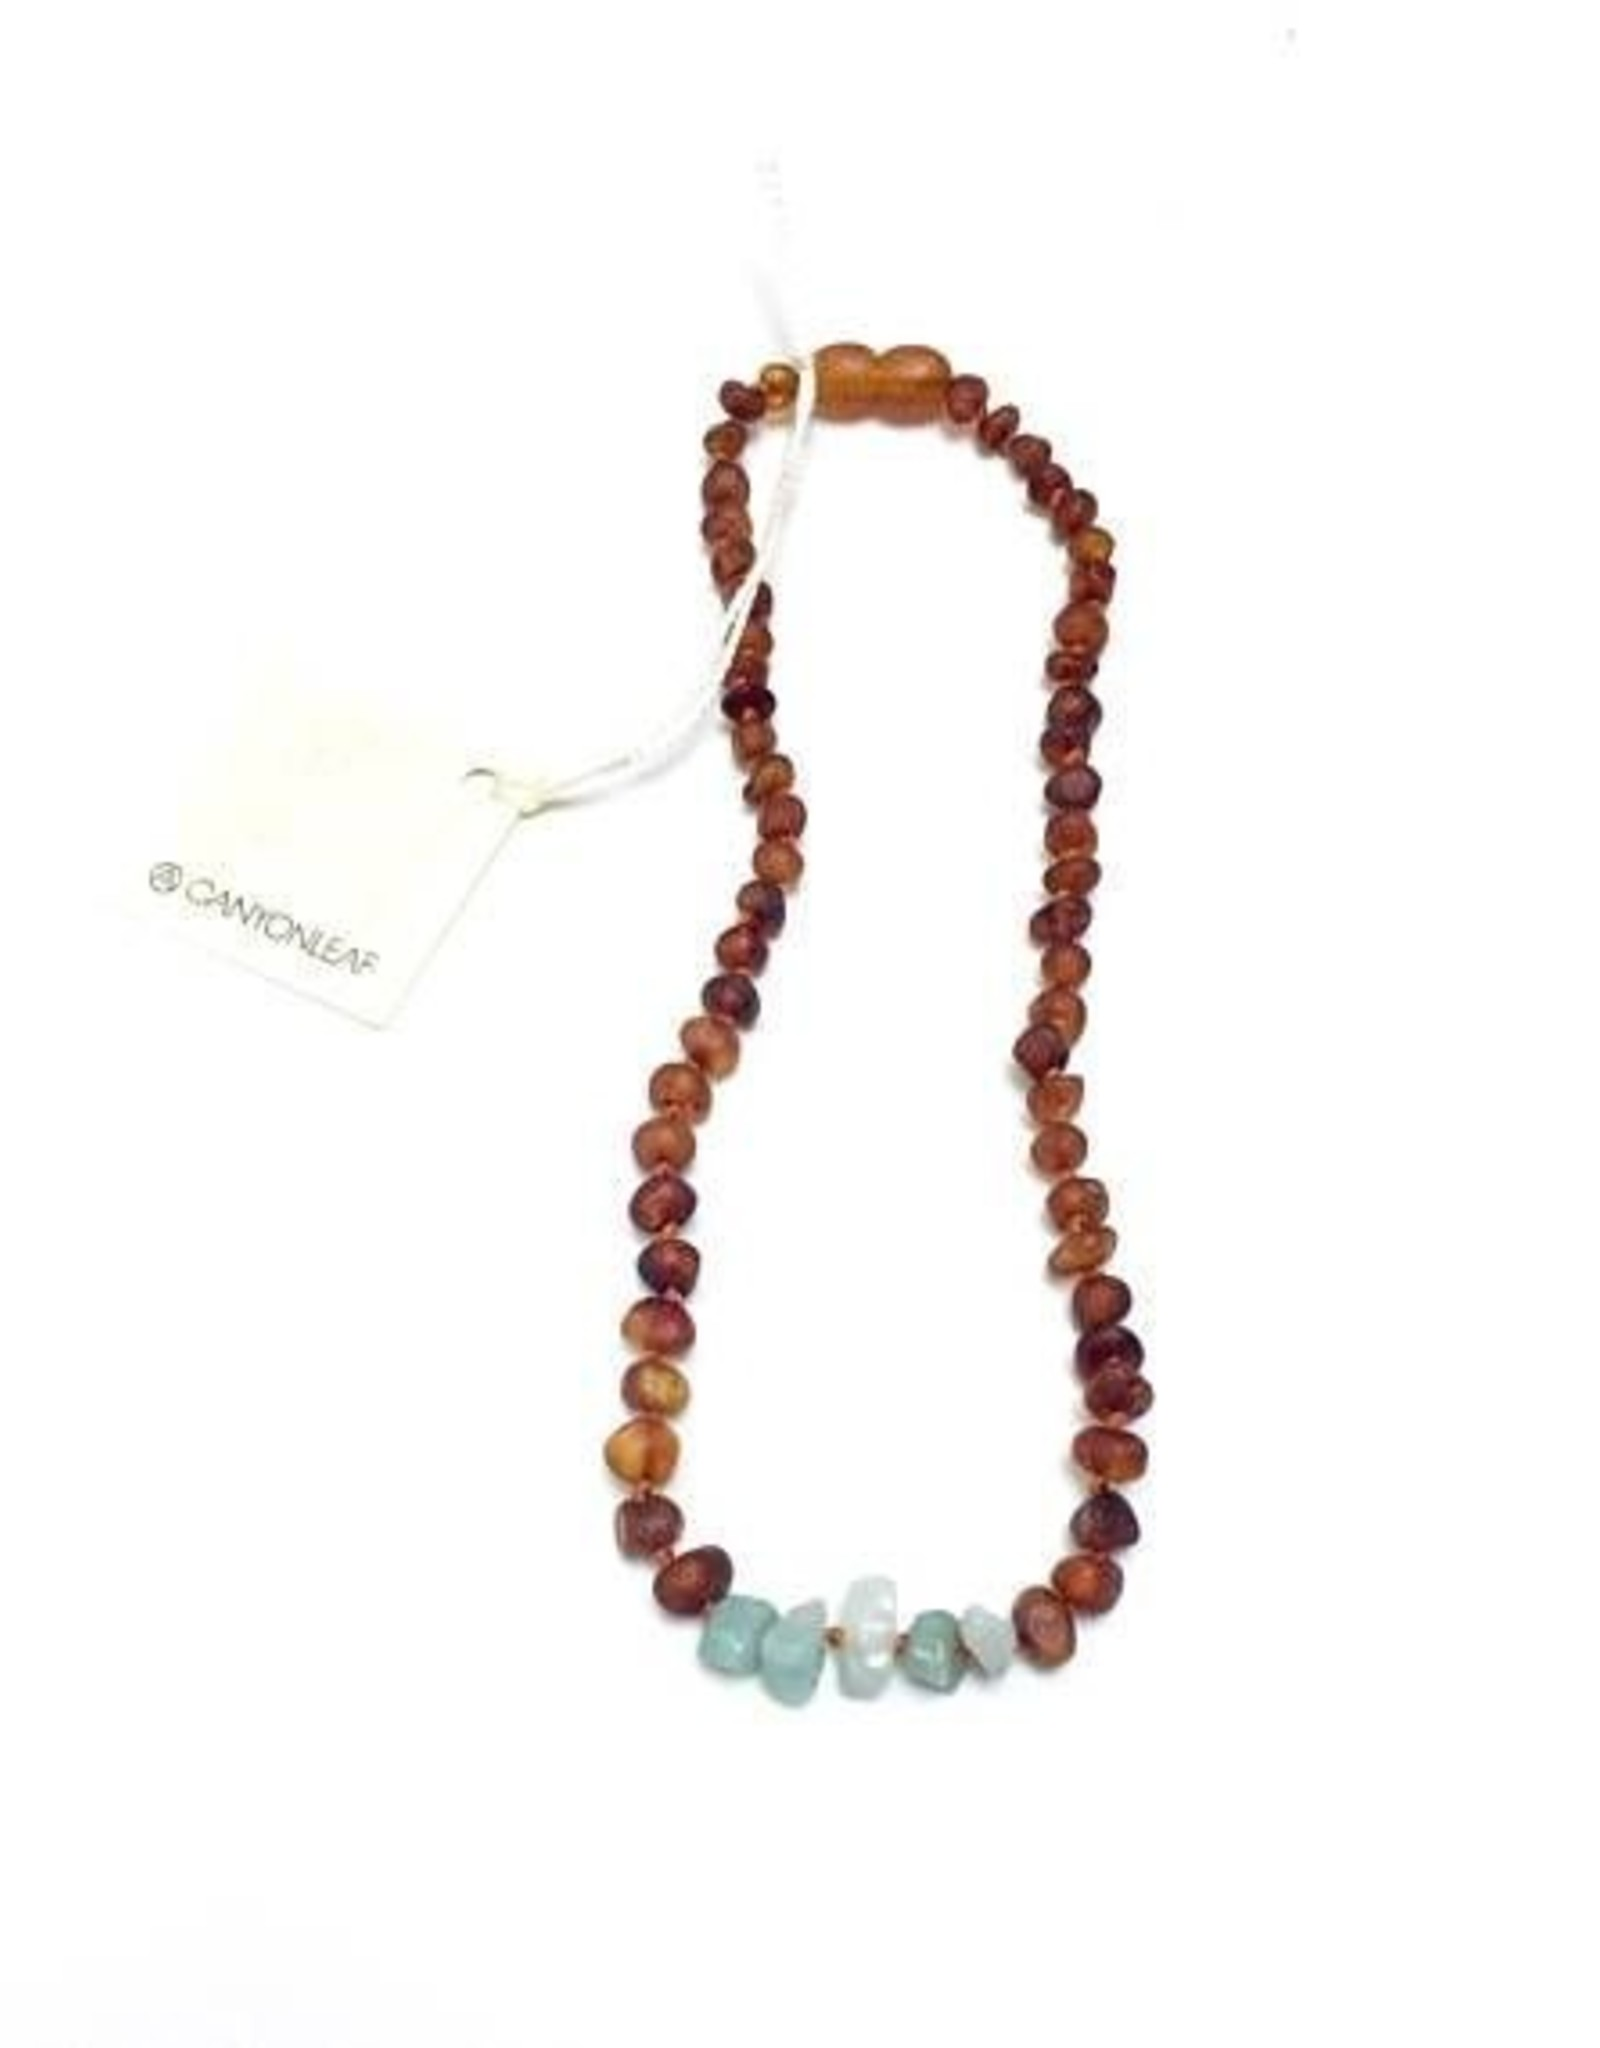 Canyon Leaf Raw Baltic Amber Adult Necklace with Raw Amazonite Gems